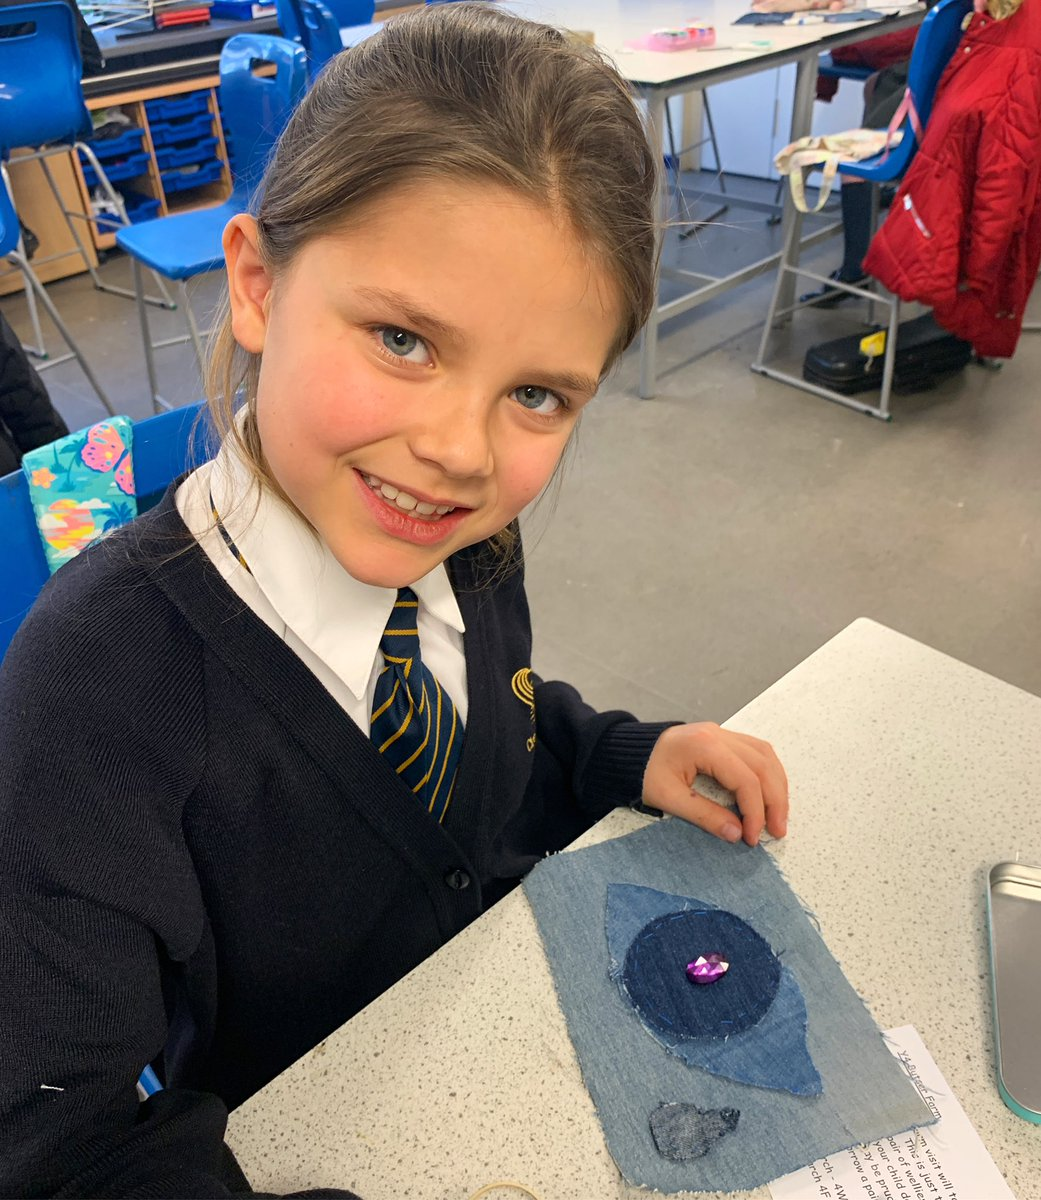 April has cut out her denim eye motif 👁 and hand sewn 🧵 it onto her pencil case. In our next lesson she wants to learn how to sew on her acrylic stone.  So hard-working and dedicated! 👏🏾🤩🙌🏾 Children from all schools welcome! • #upcycling #fashion  #creativekids #recycle